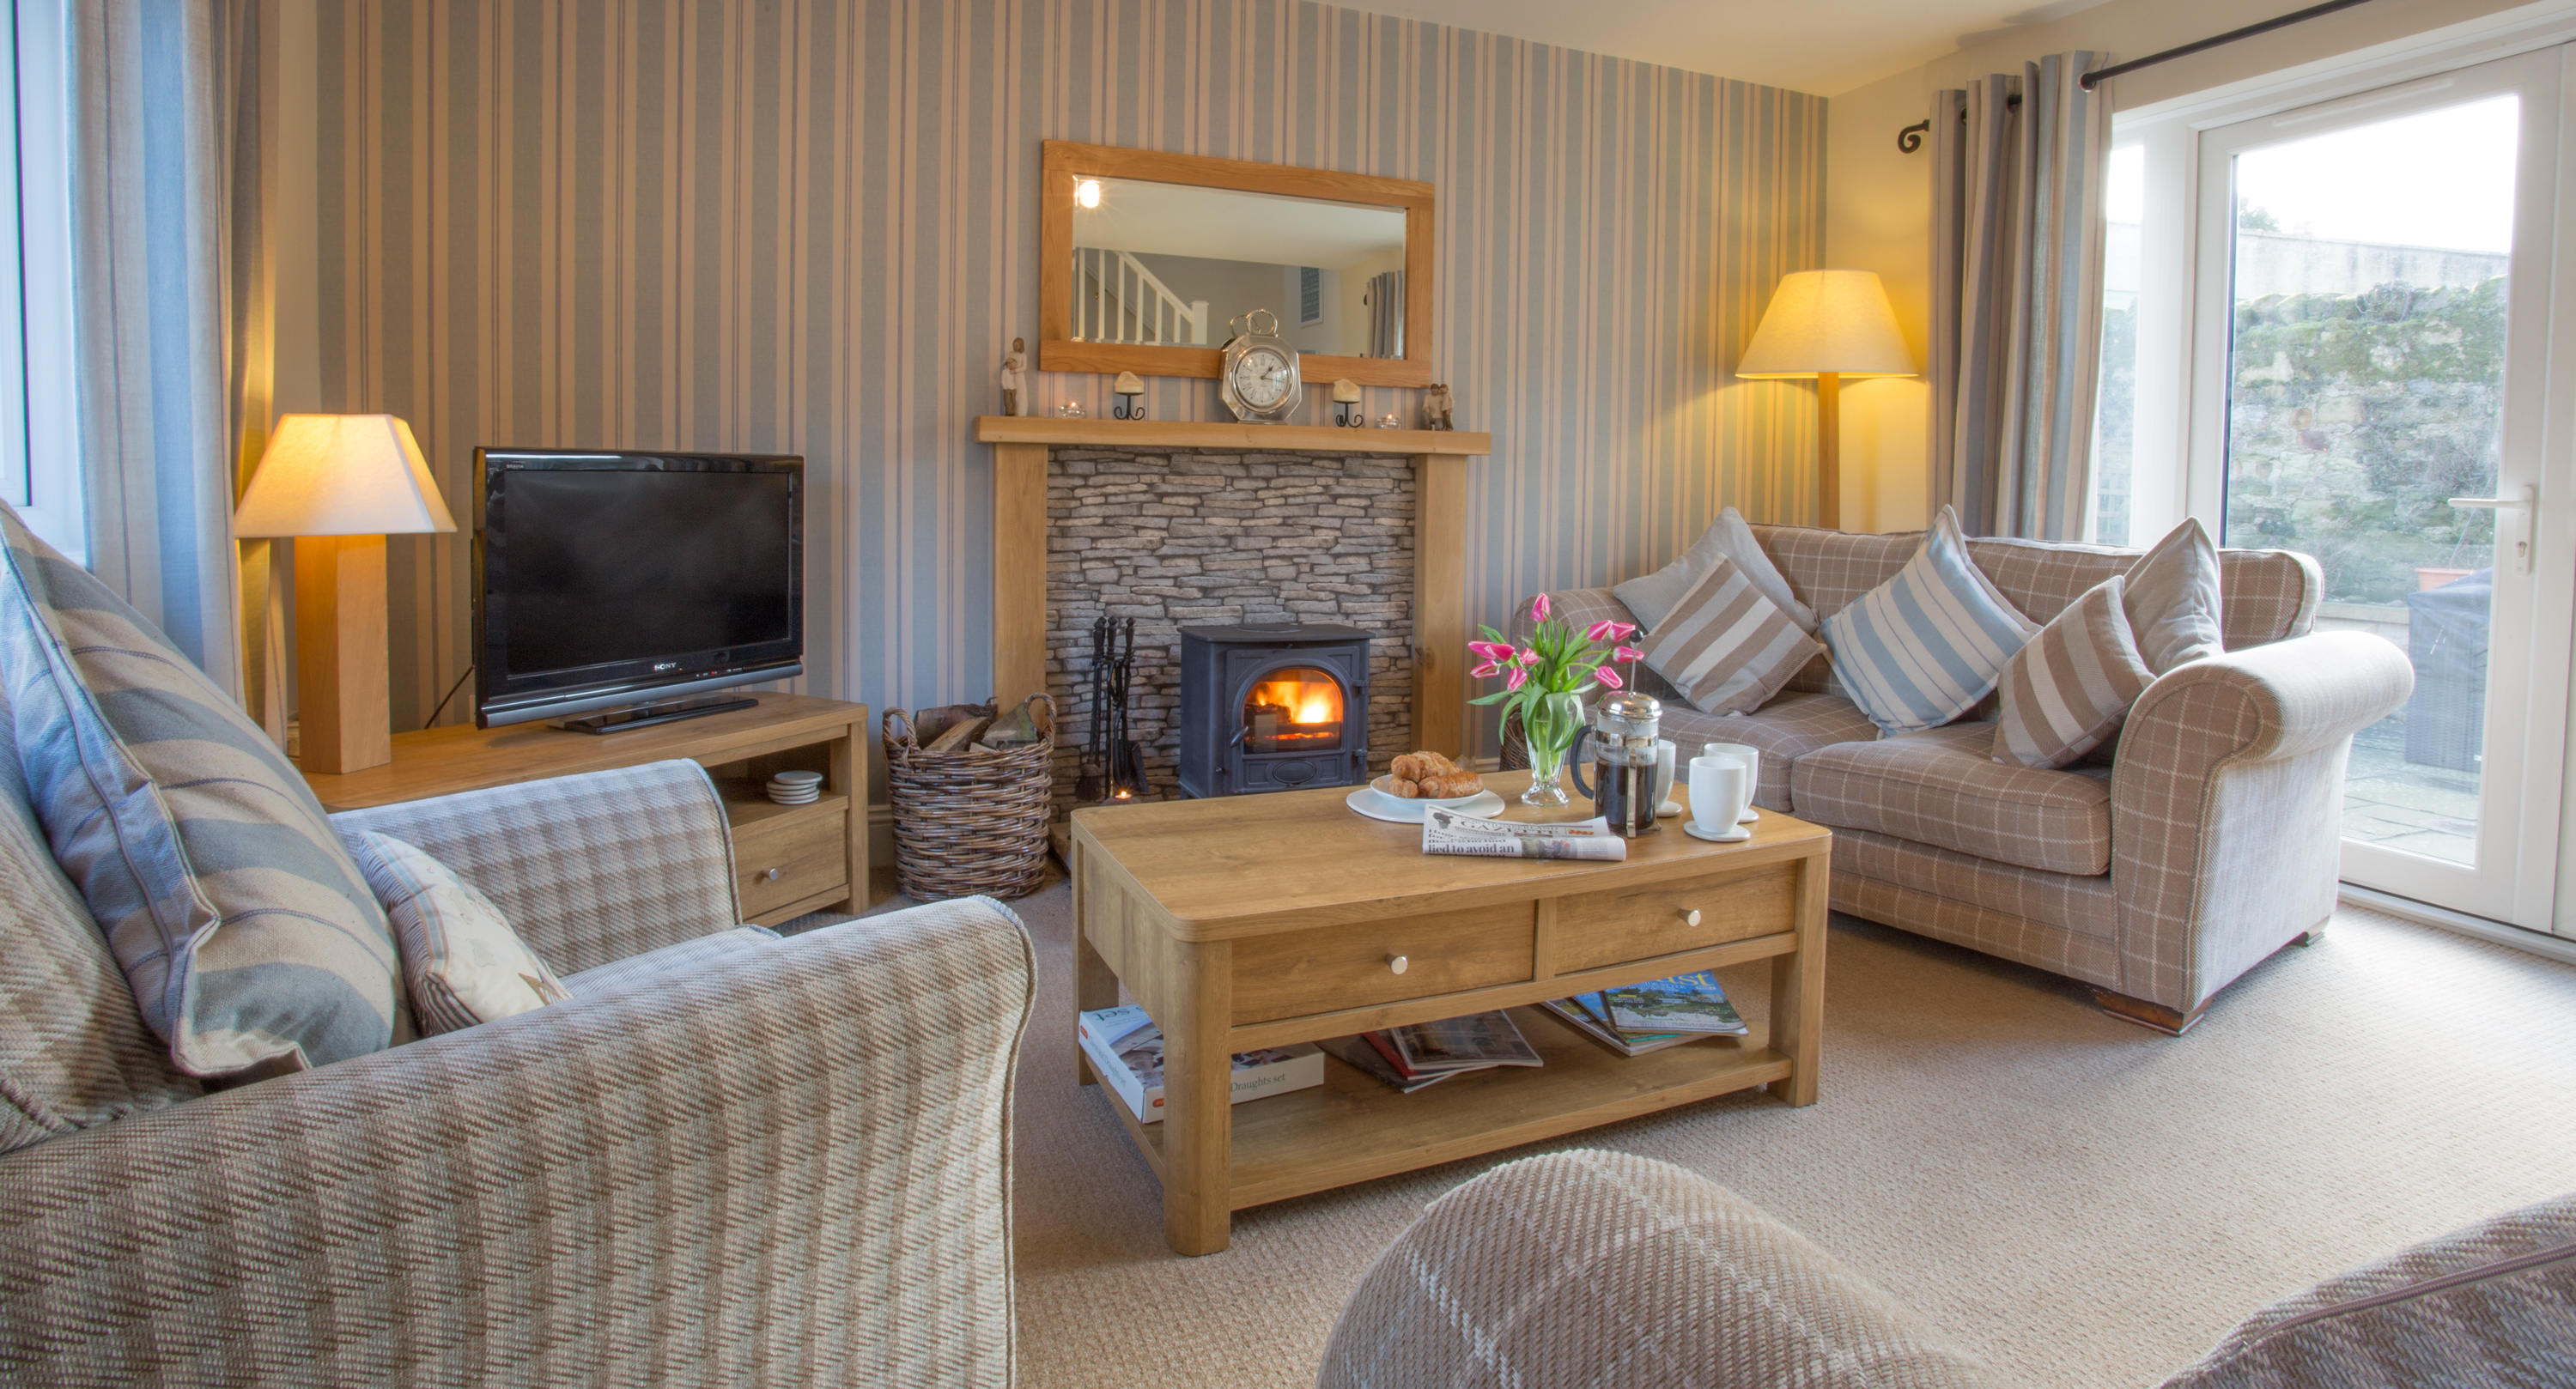 alnwick-amble-warkworth-beach-luxury-dog-friendly-craster-holiday-cottages-northumberland